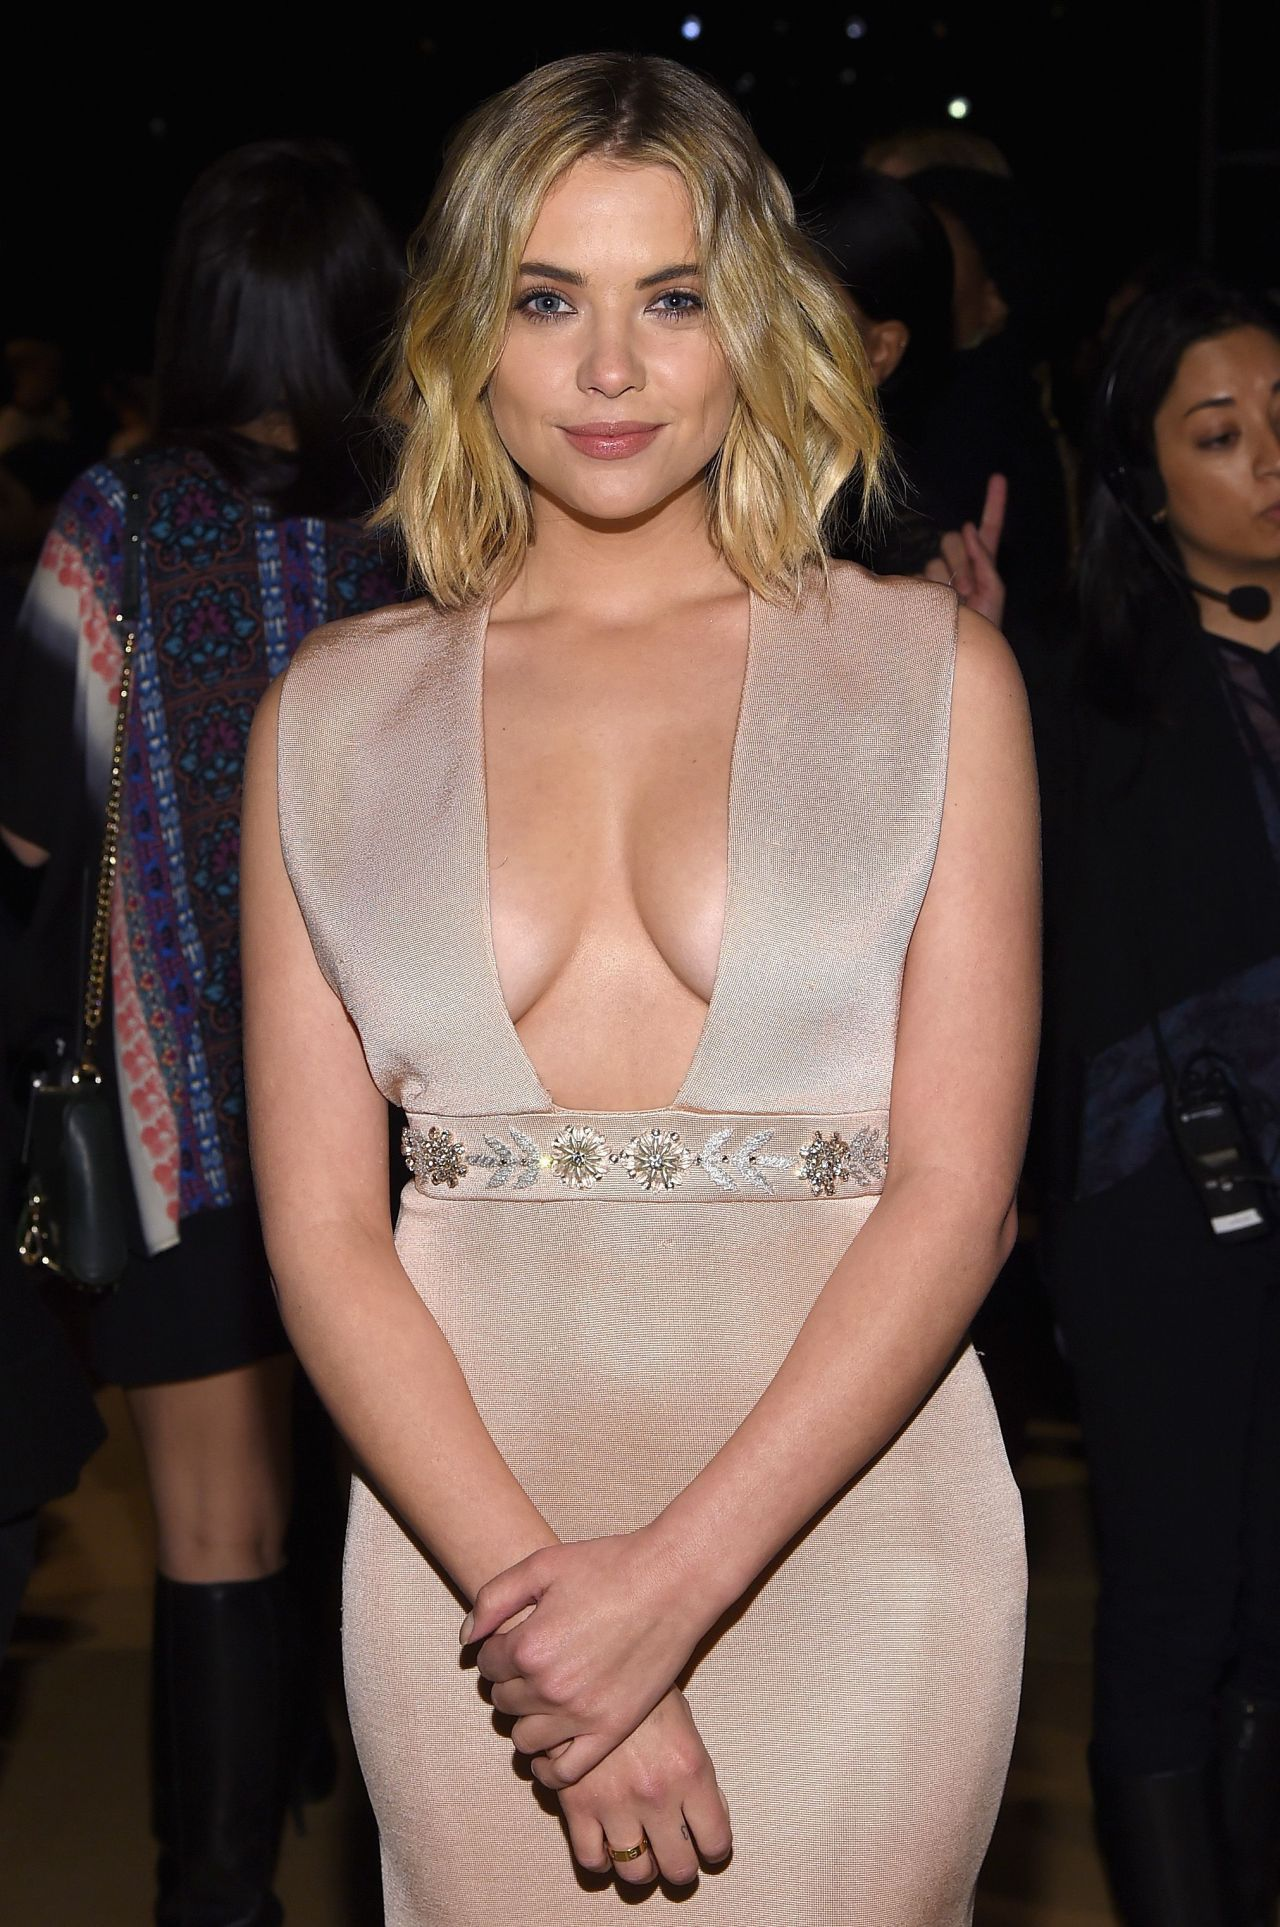 Ashley Benson - Reem Acra Fashion Show in New York City, Feb. 2015